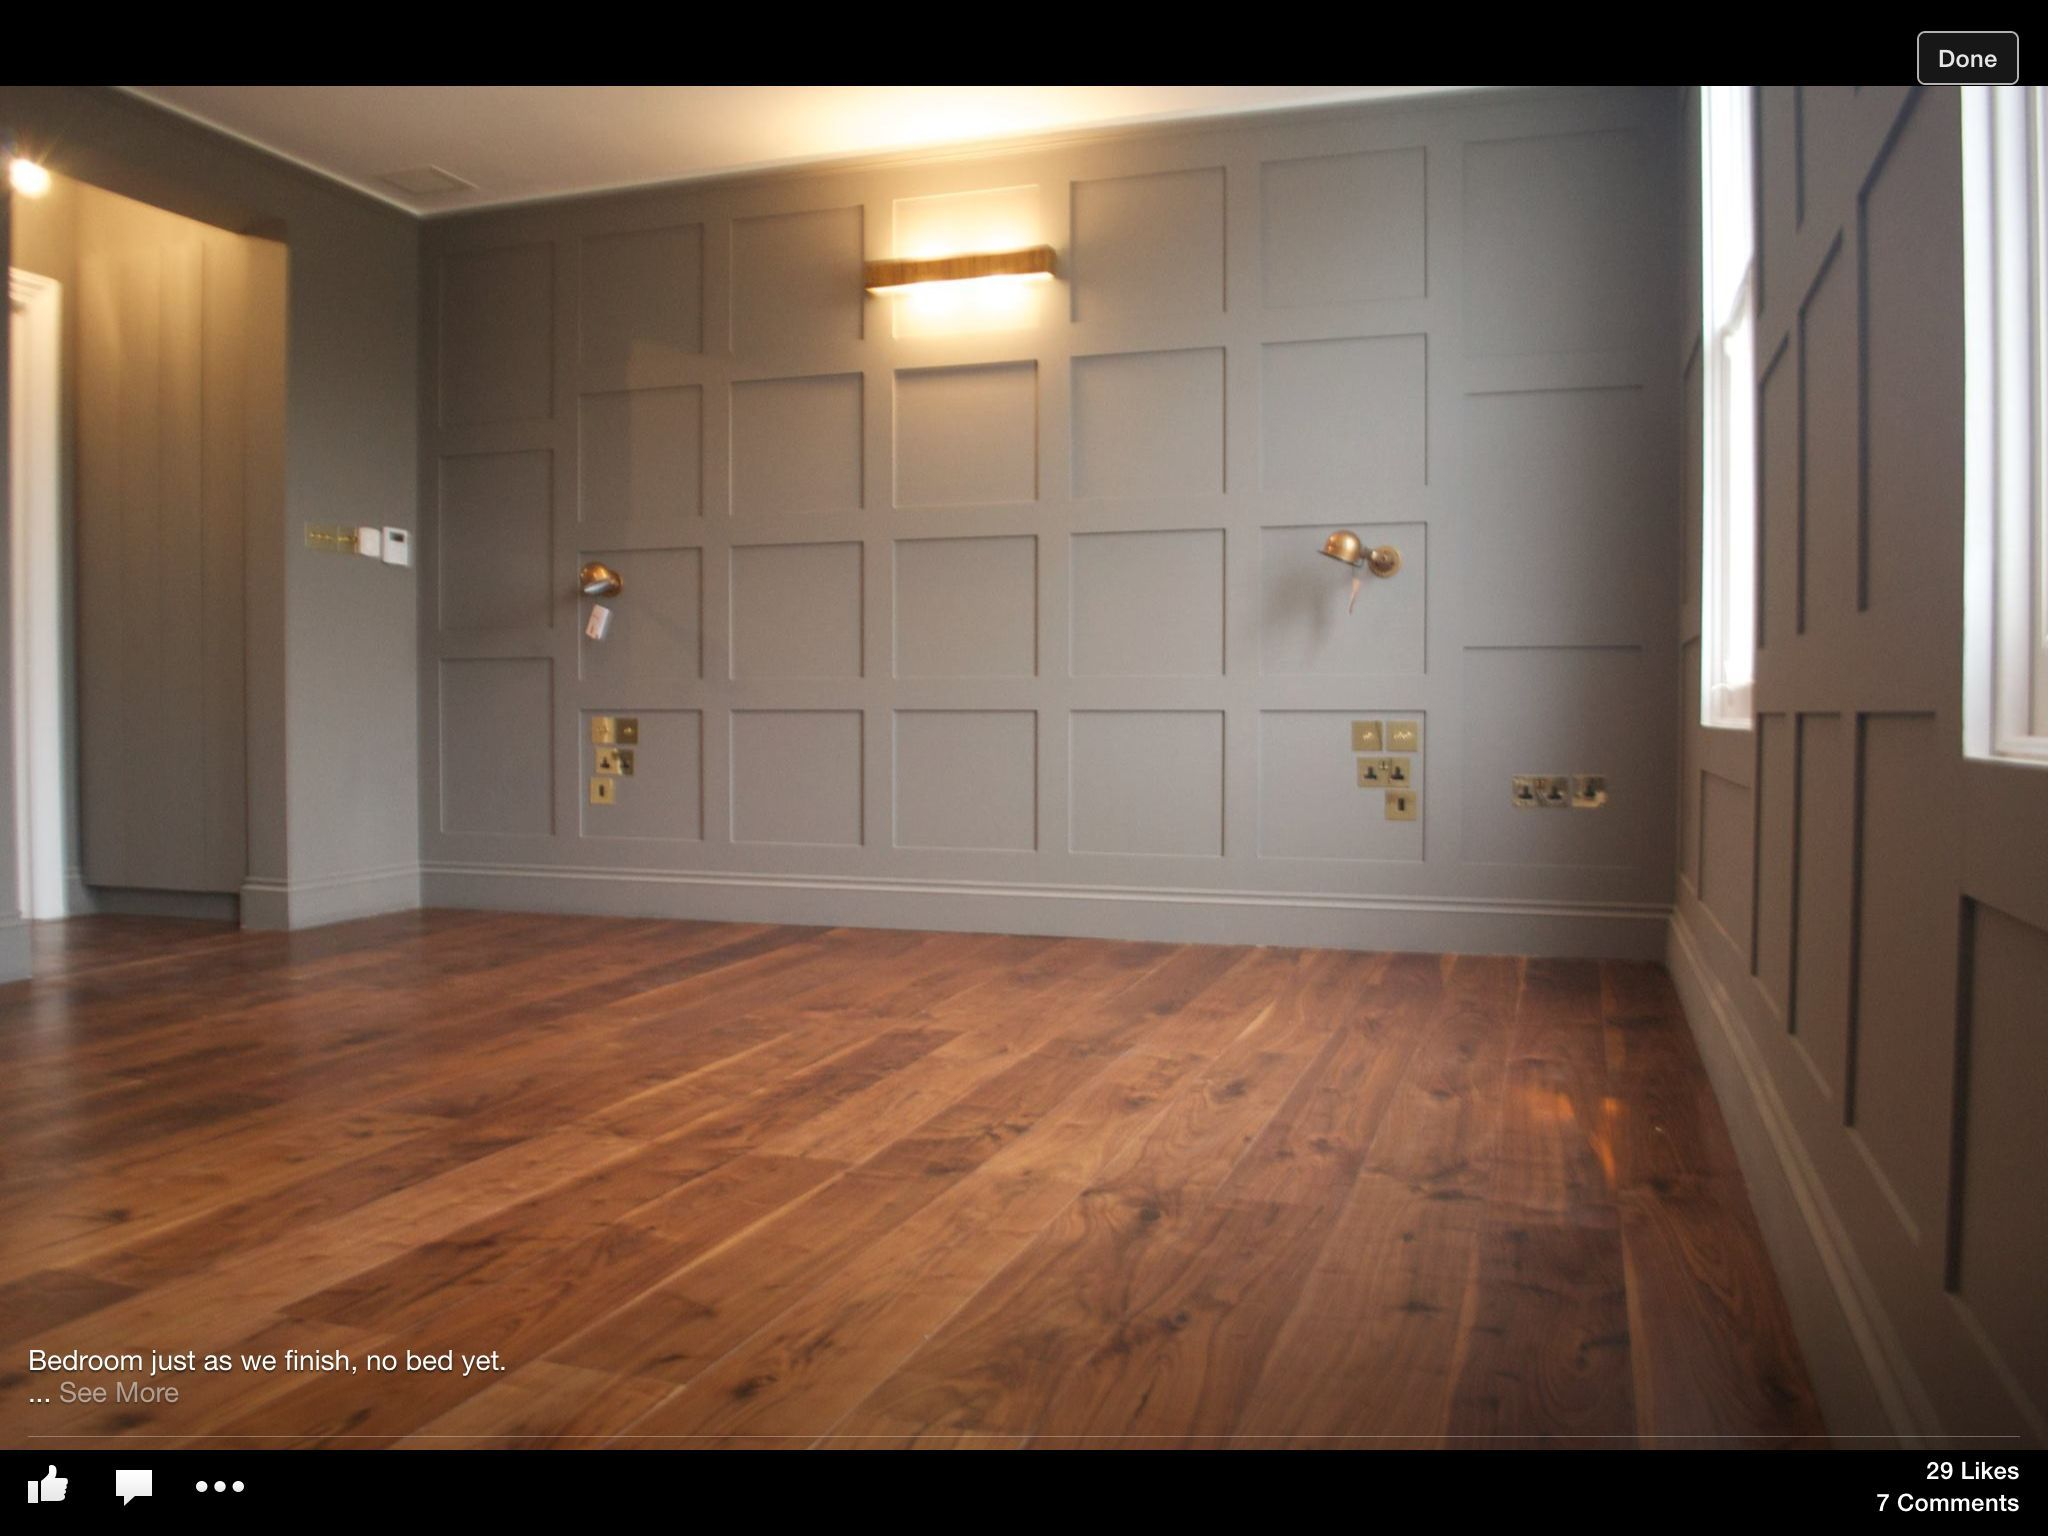 Fabulous Ideas Can Change Your Life: Flooring Material French Oak Easy Basement  Flooring.Bamboo Flooring Ideas Grey Flooring Master Bath.